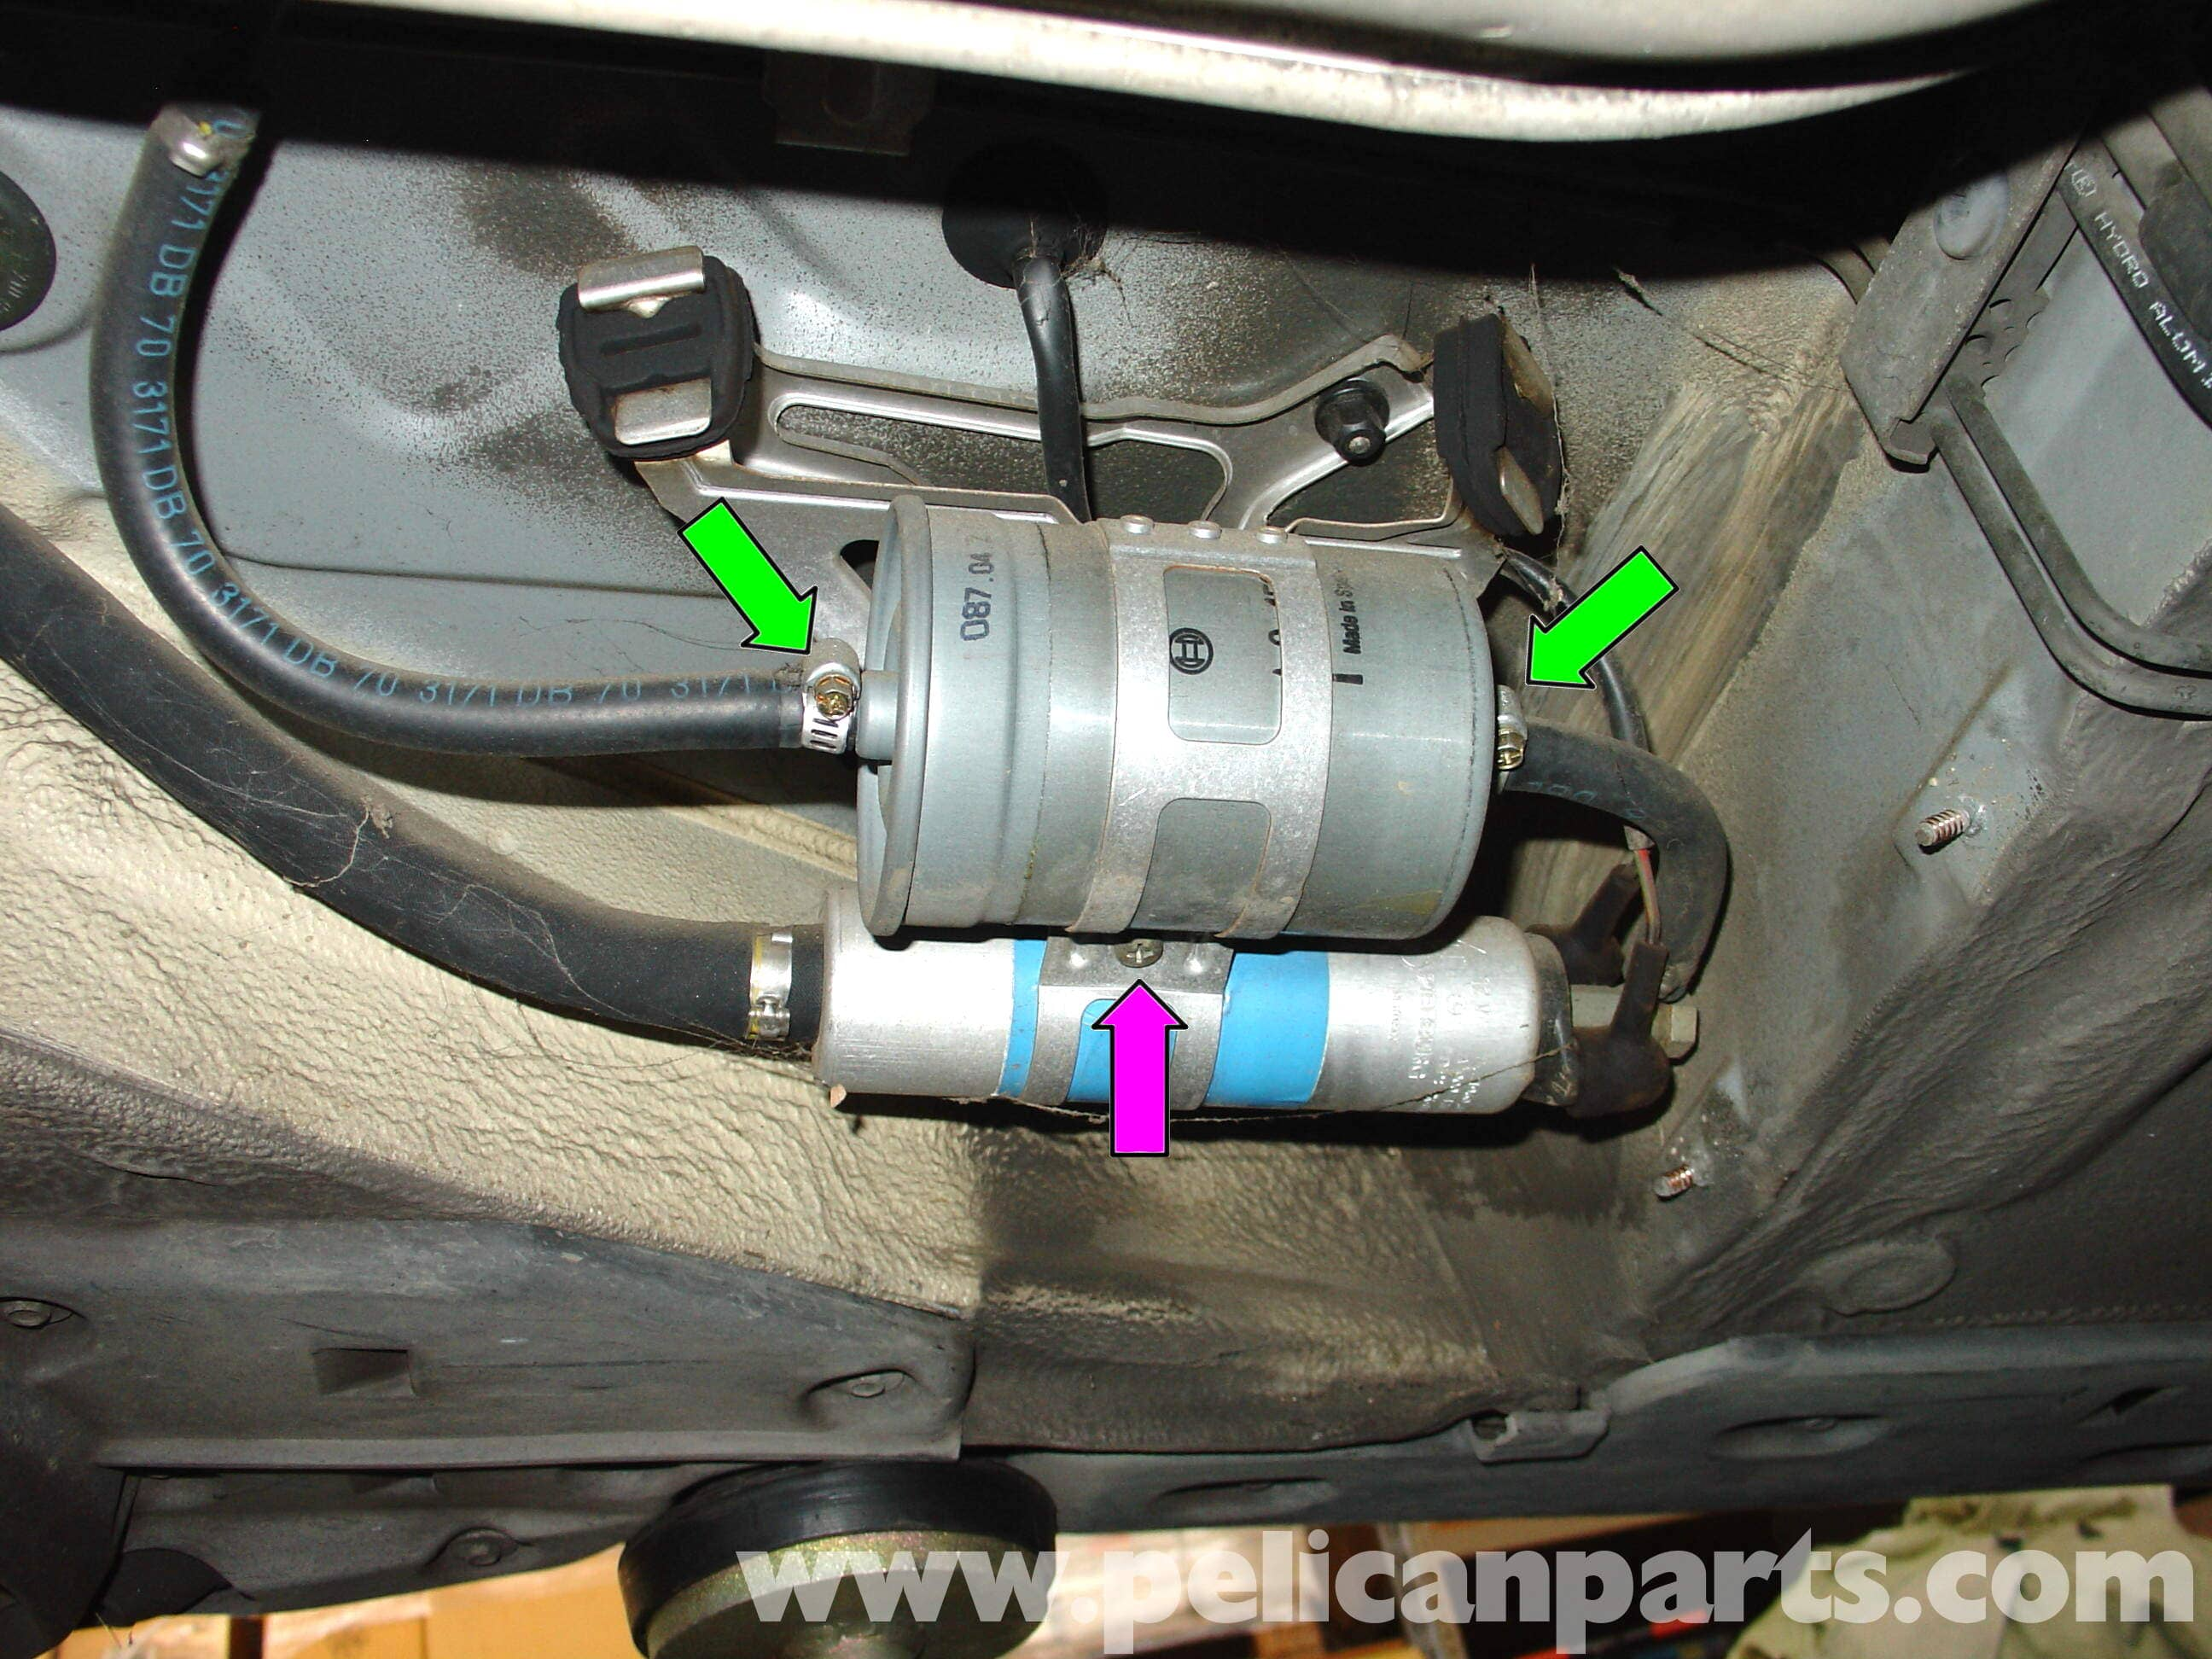 Mercedes Fuel Filter Location Wiring Library 2005 Suzuki Verona Engine Diagram Large Image Extra